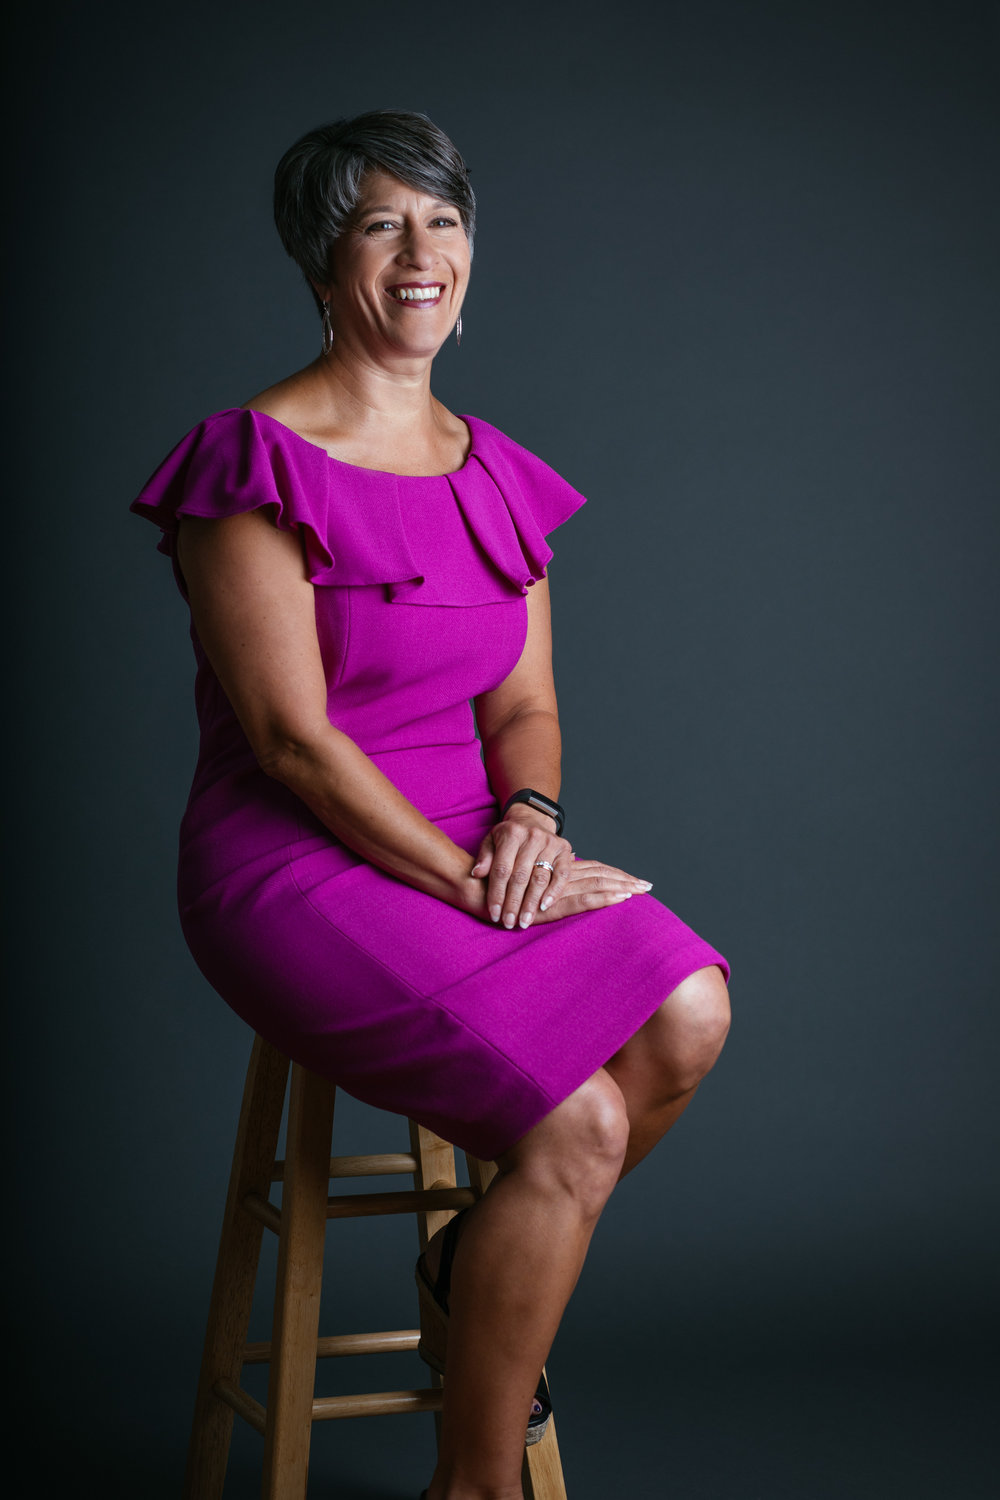 Julie Baumgardner - President & CEO Of First Things First